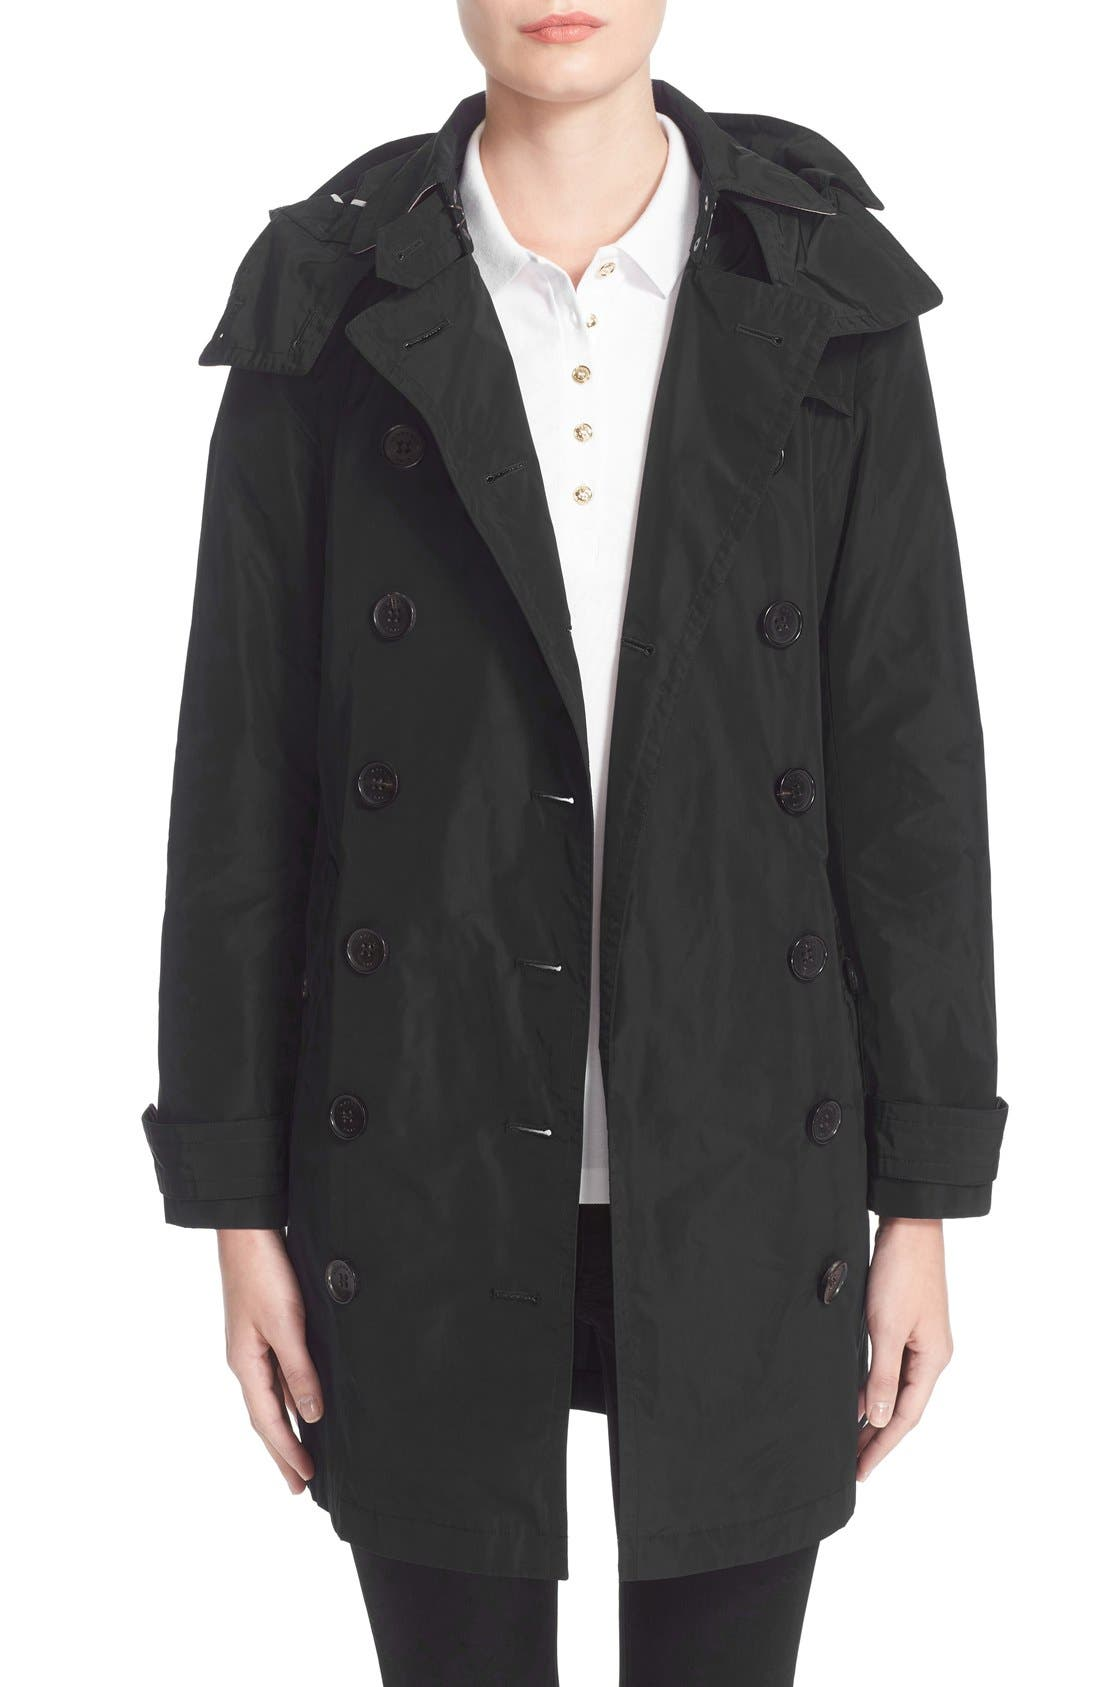 BURBERRY, Balmoral Packable Trench, Alternate thumbnail 9, color, 001